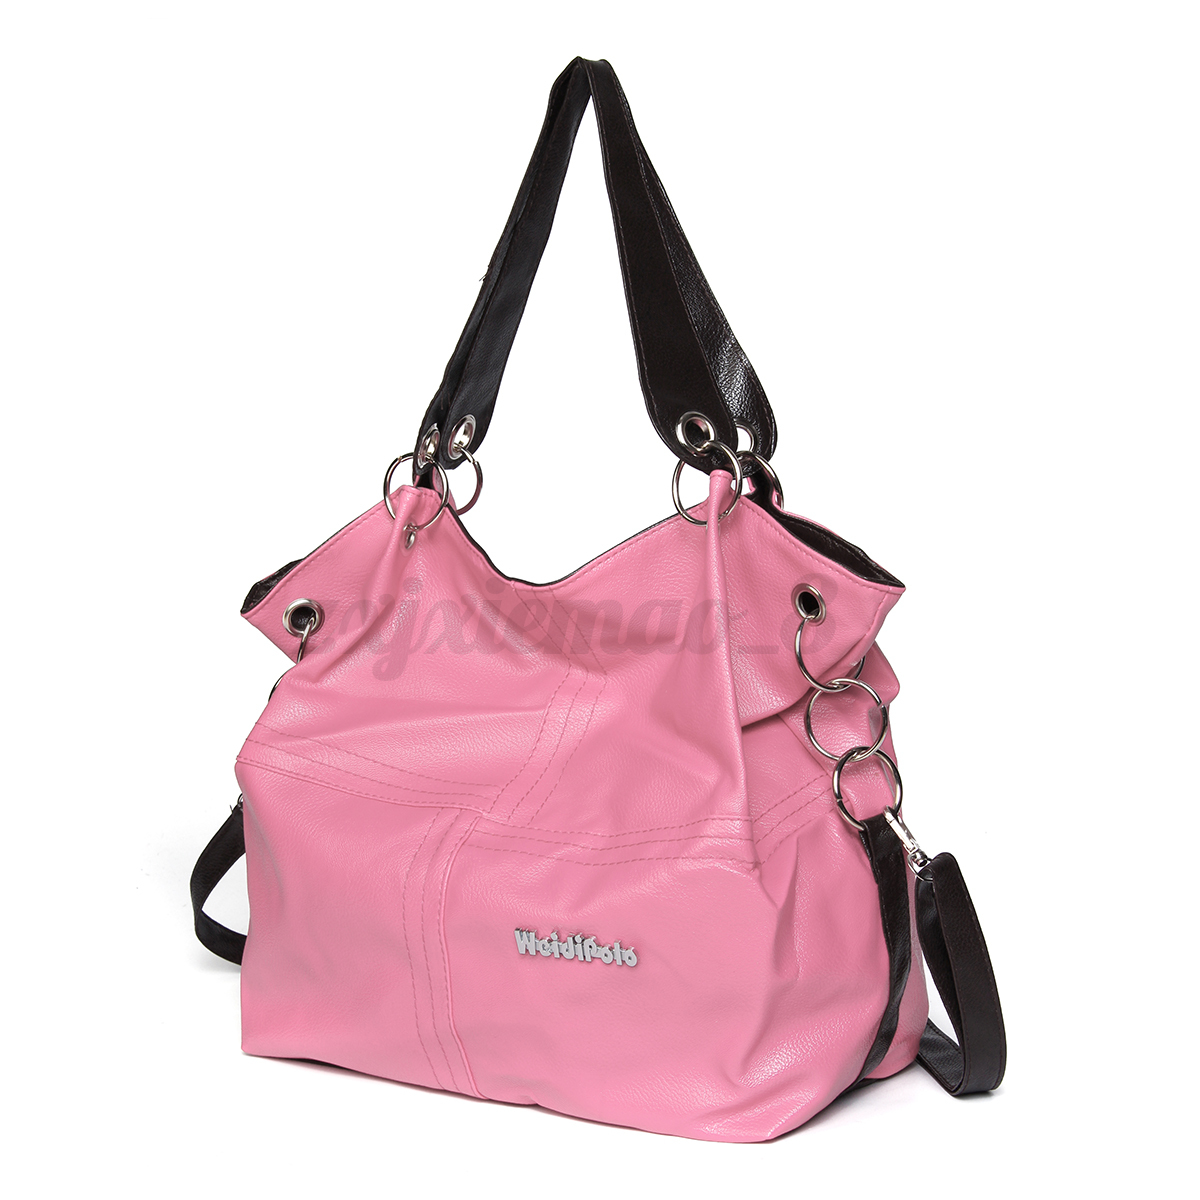 Shop eBay for great deals on Women's Satchel HandBags. You'll find new or used products in Women's Satchel HandBags on eBay. Free shipping on selected items.